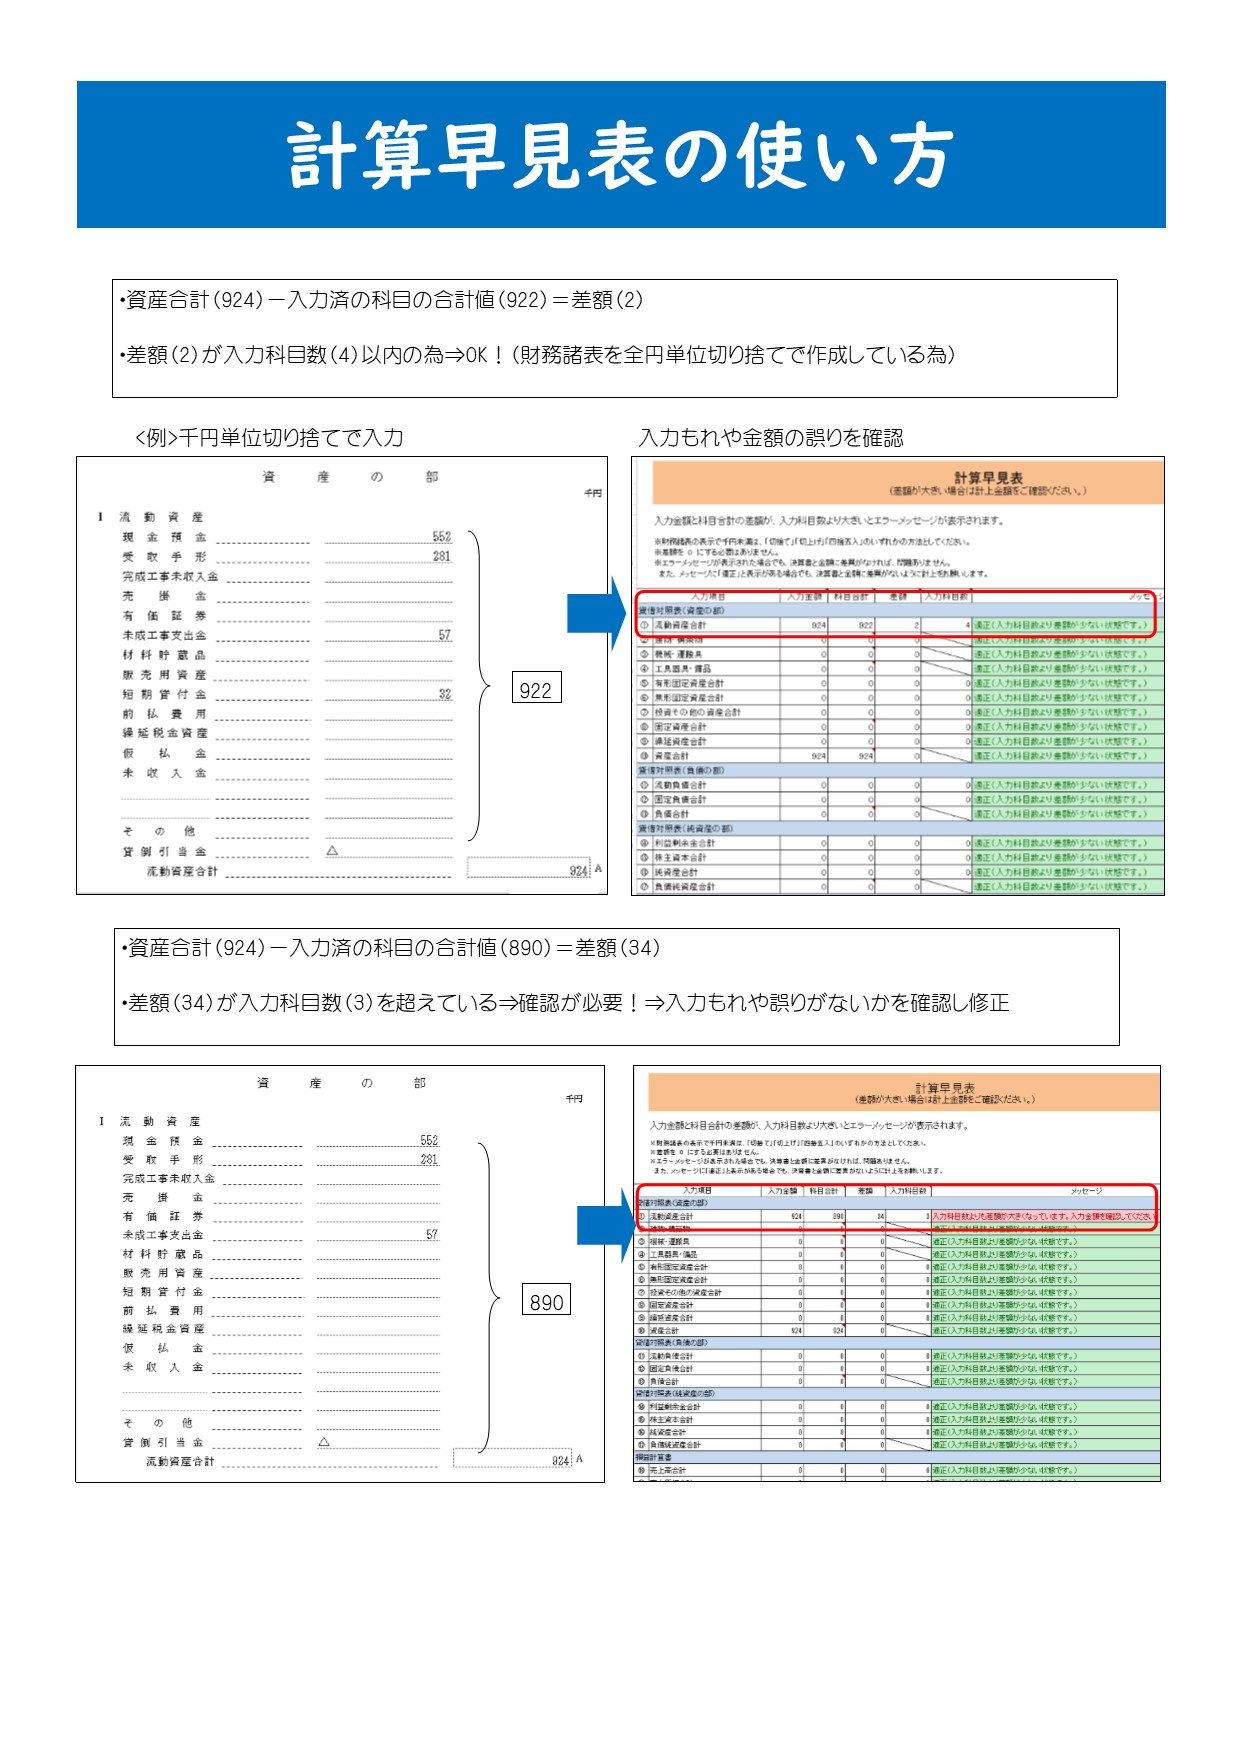 新規 Microsoft Publisher 文書.jpg